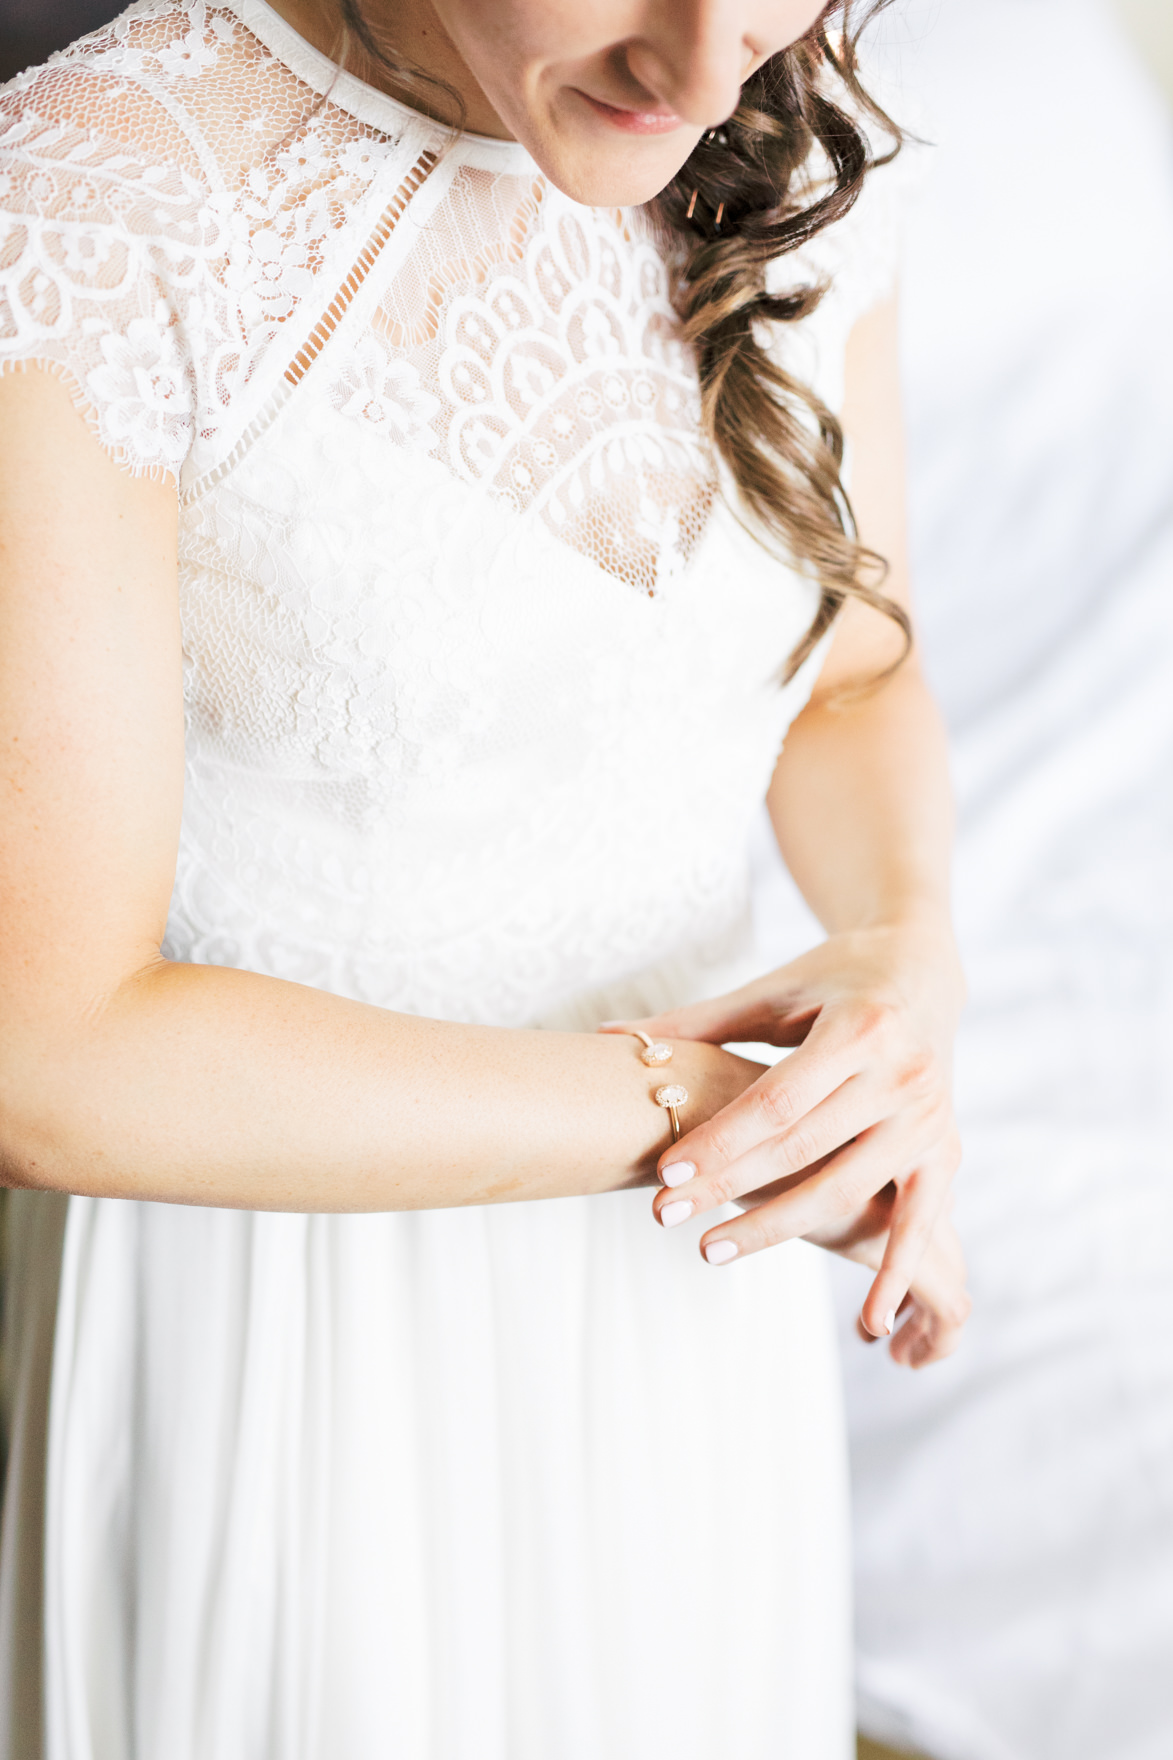 Those little finishing touches of putting on jewelry are some of our favorite moments to capture, like this shot of Missy getting ready for her modern and elegant old city Philadelphia wedding at Power Plant Productions. Power Plant Production wedding photographer